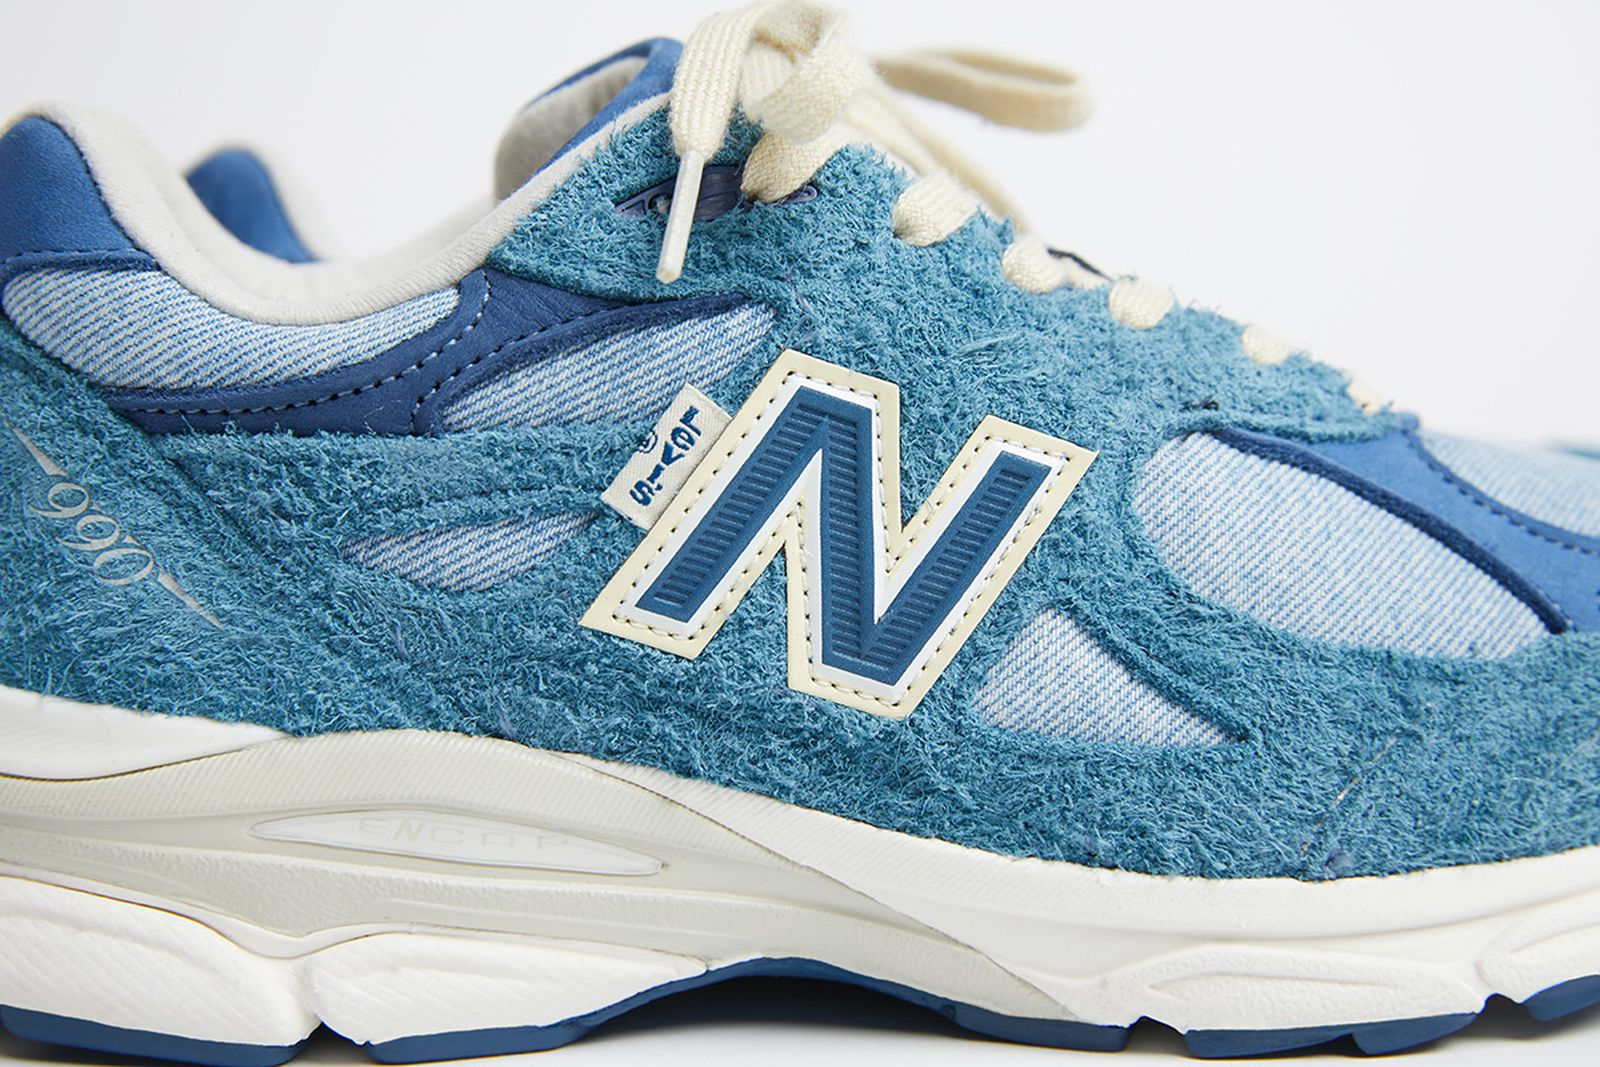 levis-new-balance-990v3-release-date-price-03